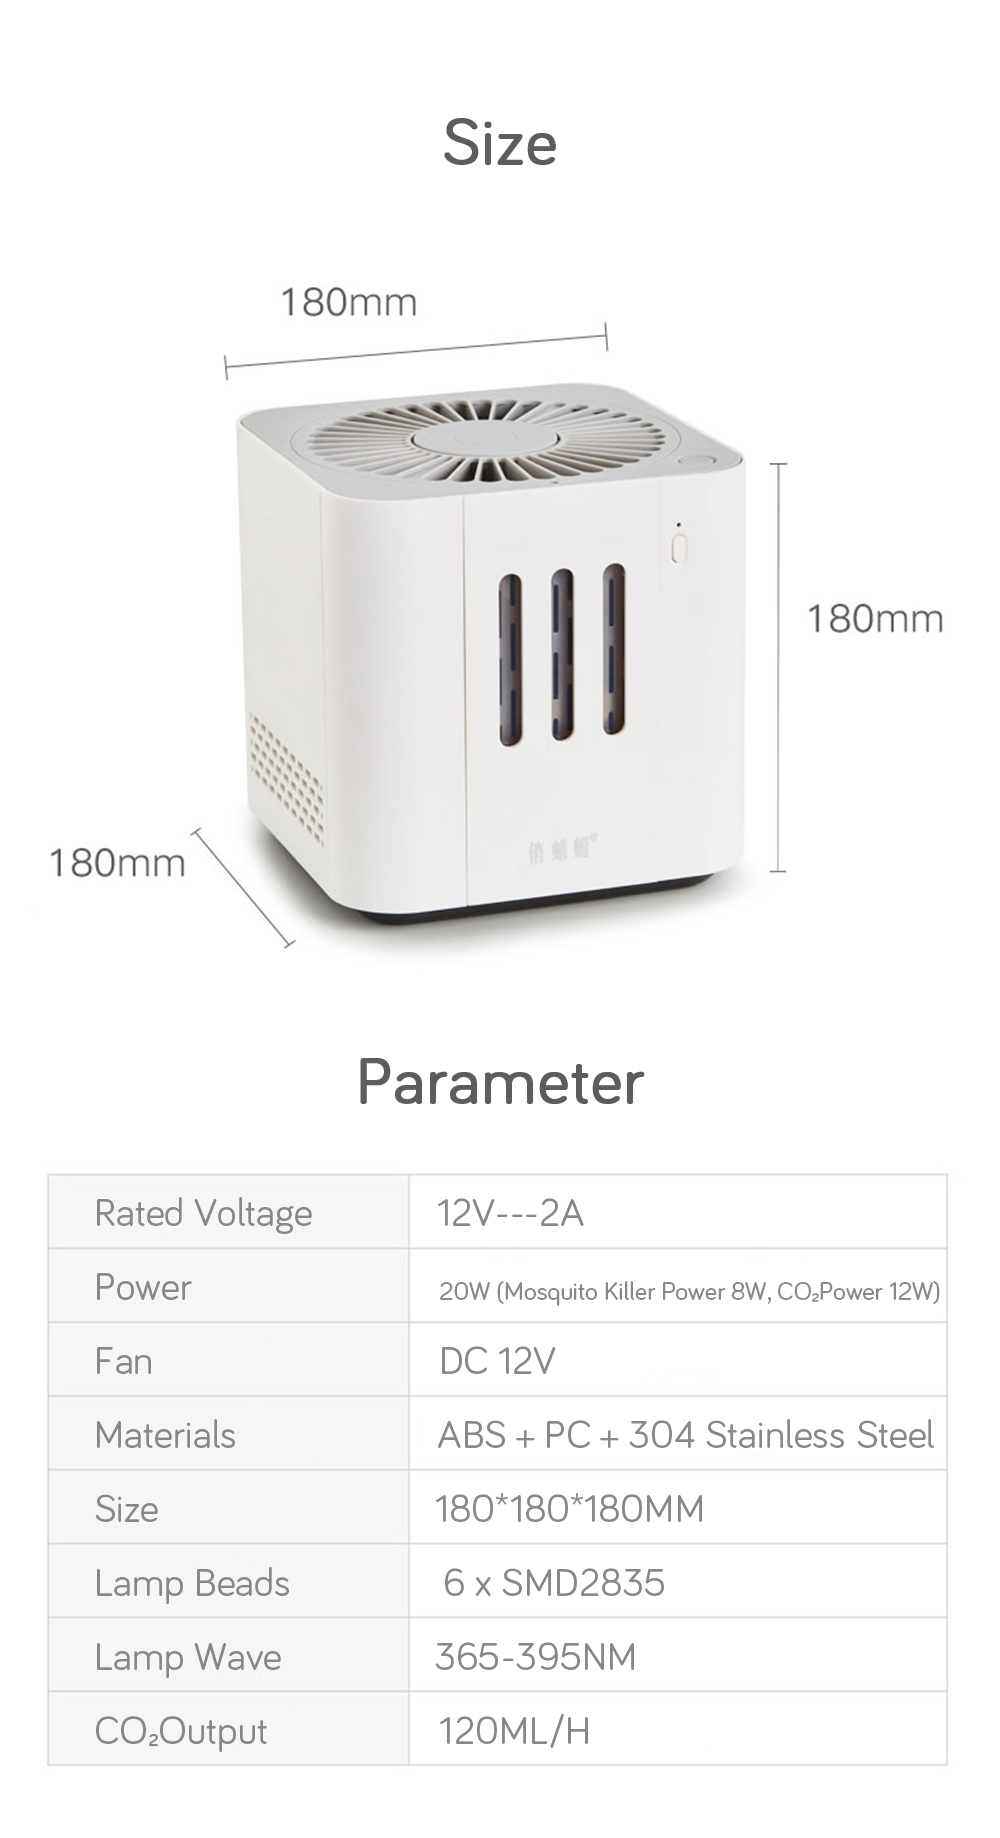 [Xiaomi Youpin] Cokit DYT-08 CO₂ Mosquito Killer Lamp 110V-240V Plug-in Insect Killer Lamp Auto Suction Mosquito Dispeller